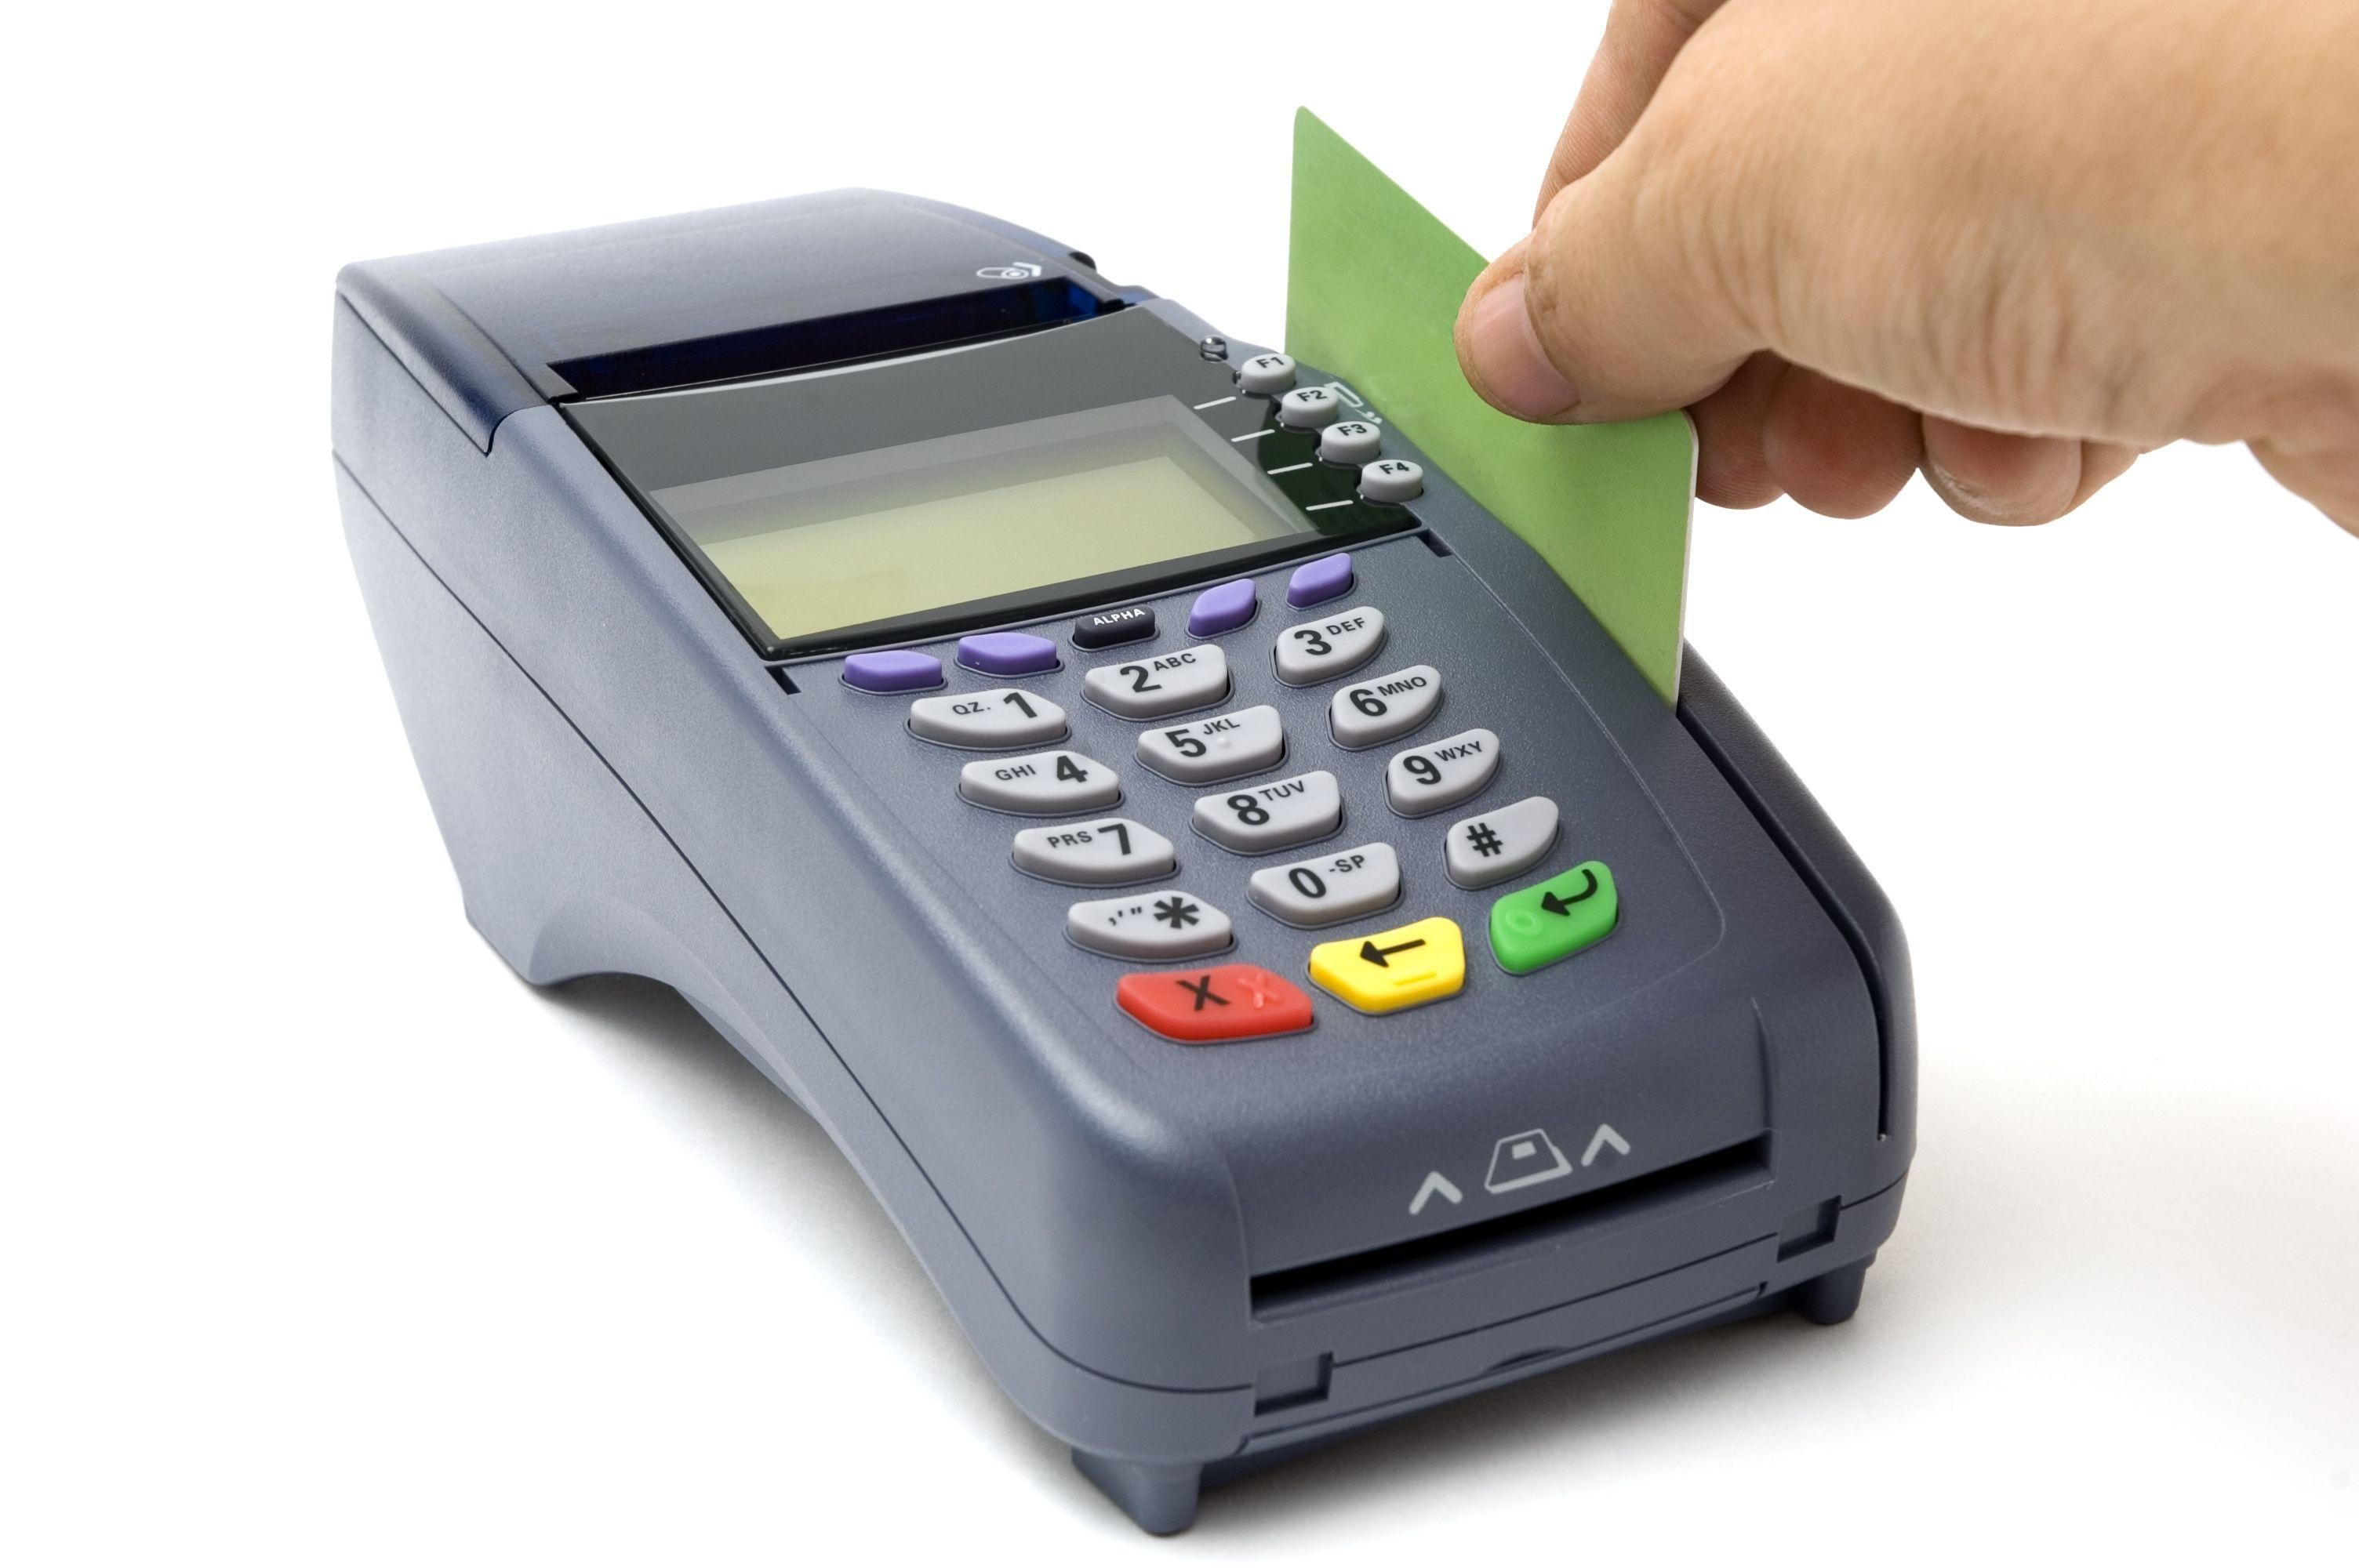 Datfonog jpeg imagen 3008 2000 pixeles escalado 32 wireless credit card machine or portable credit card machine terminals allow you to take payments conveniently to the customer fdisp provide best credit colourmoves Images